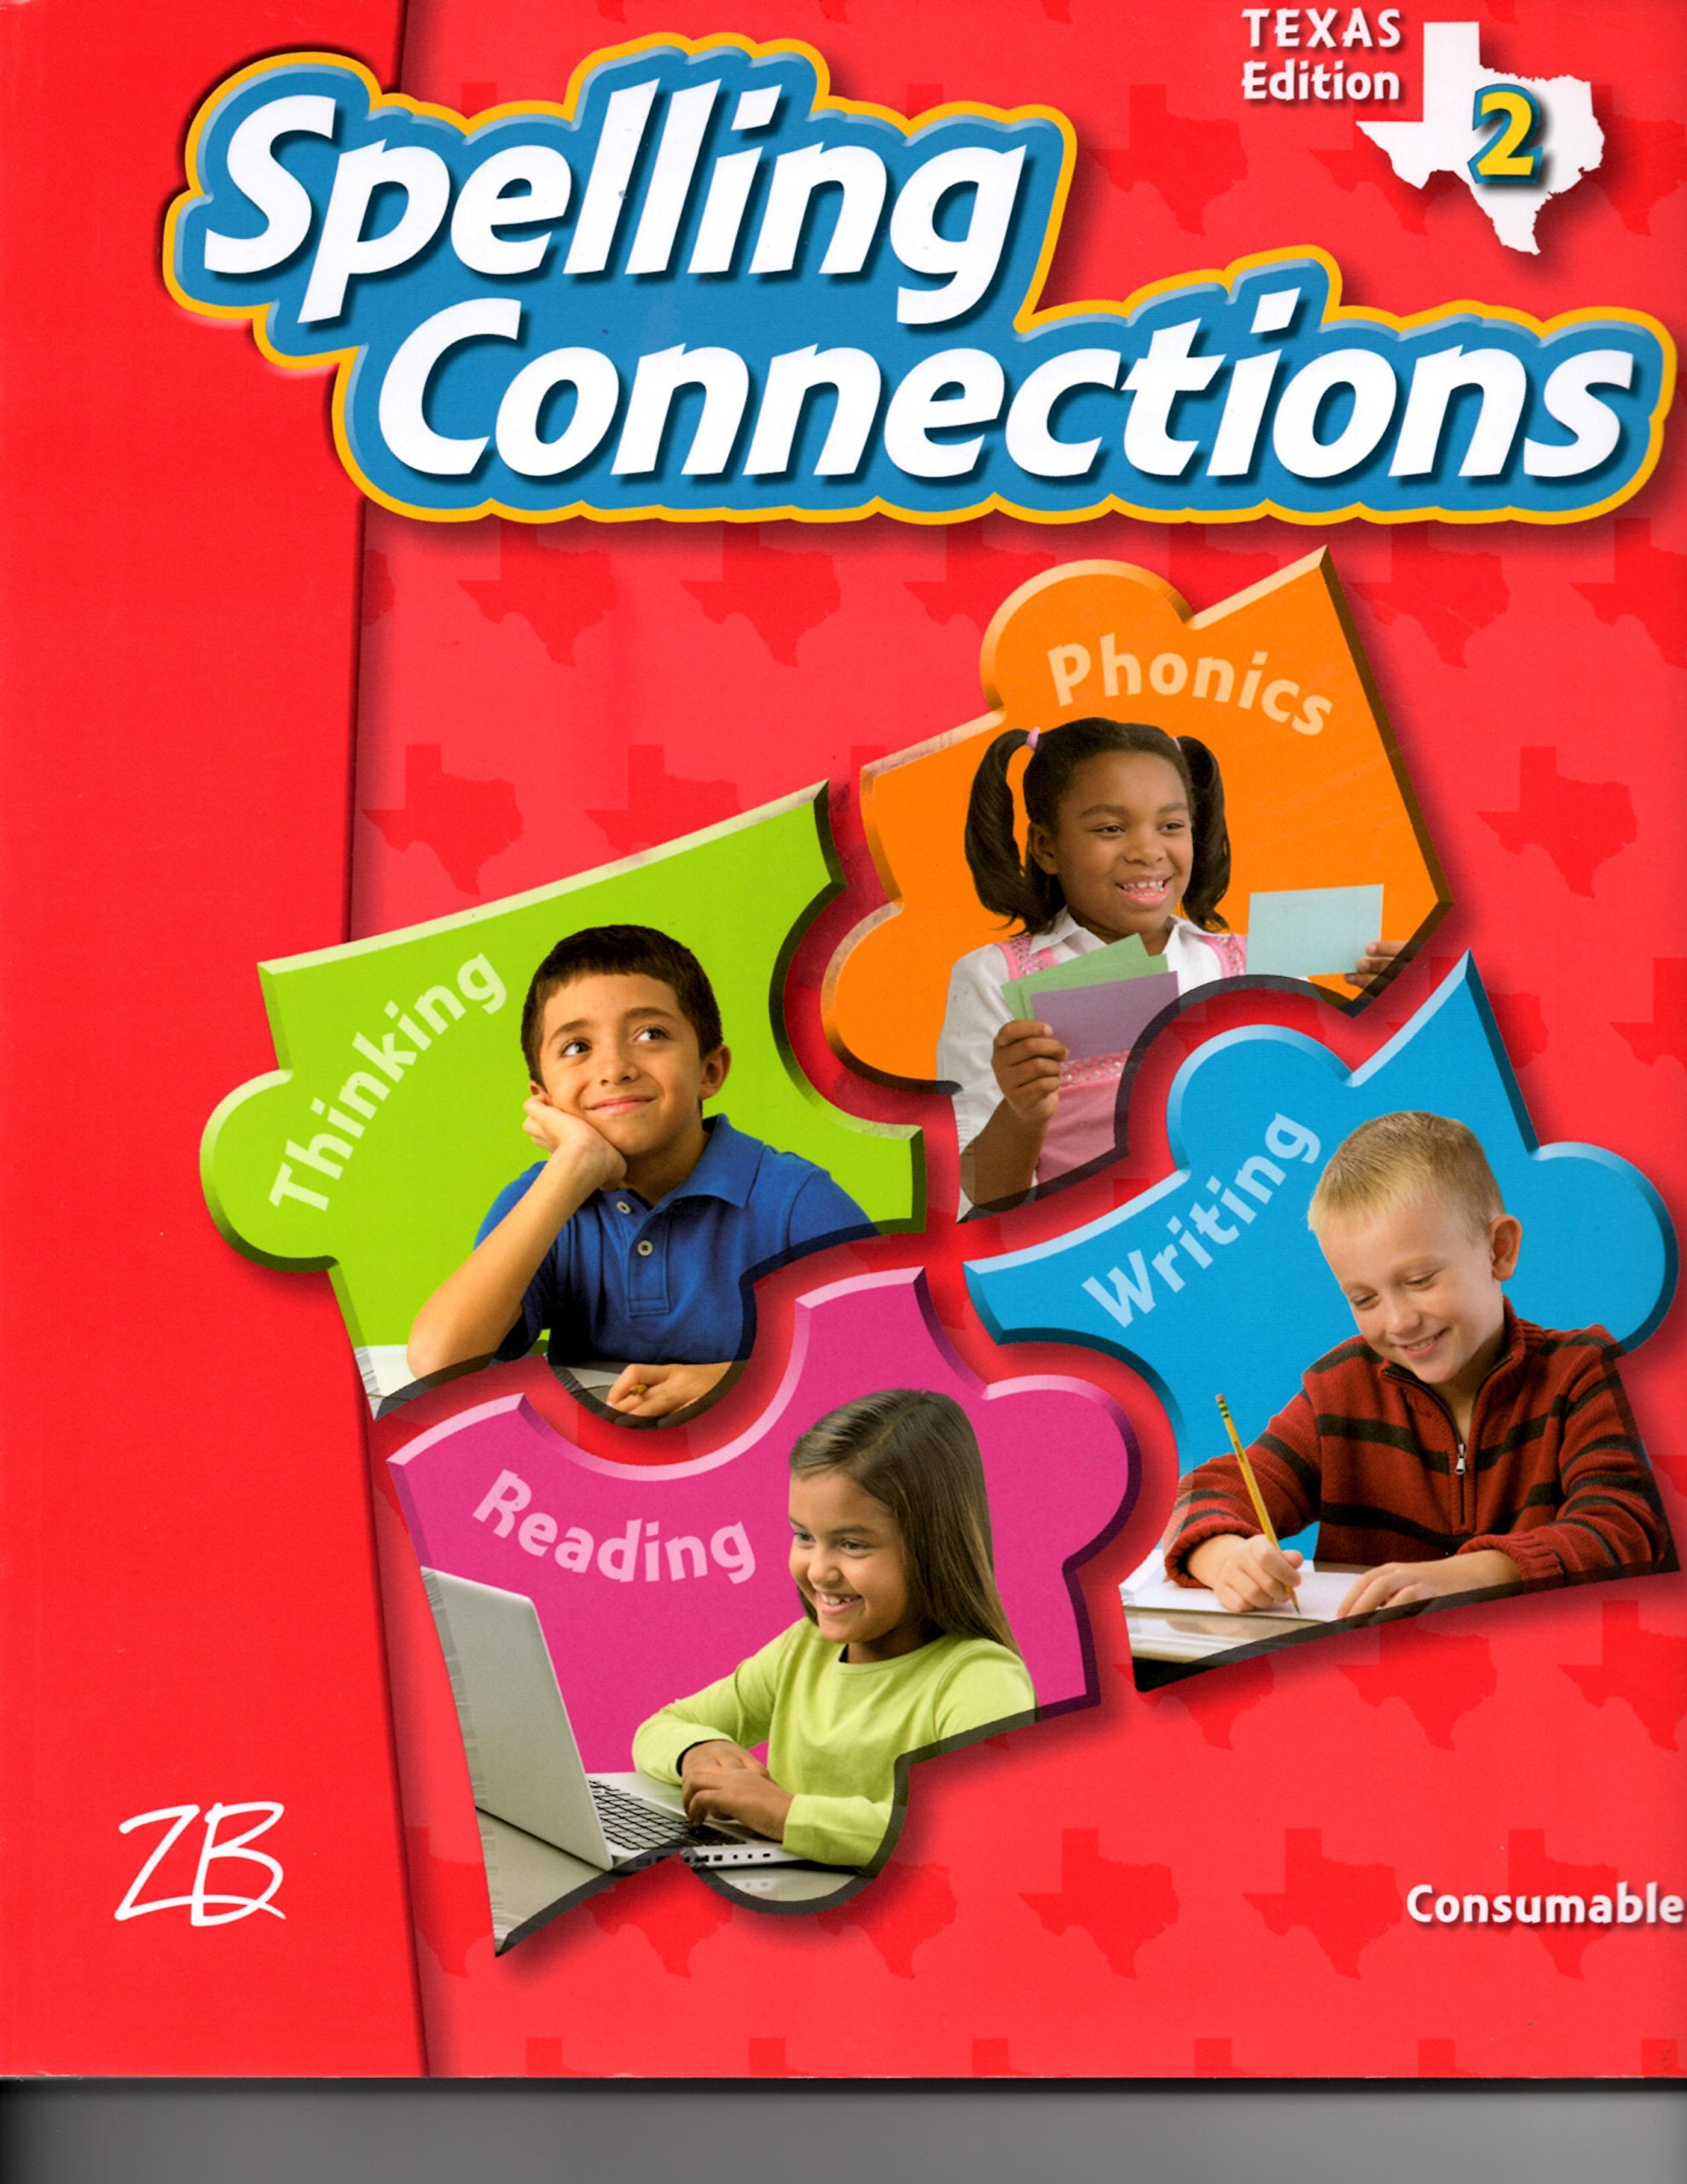 Spelling Connections Texas Edition 2 ebook